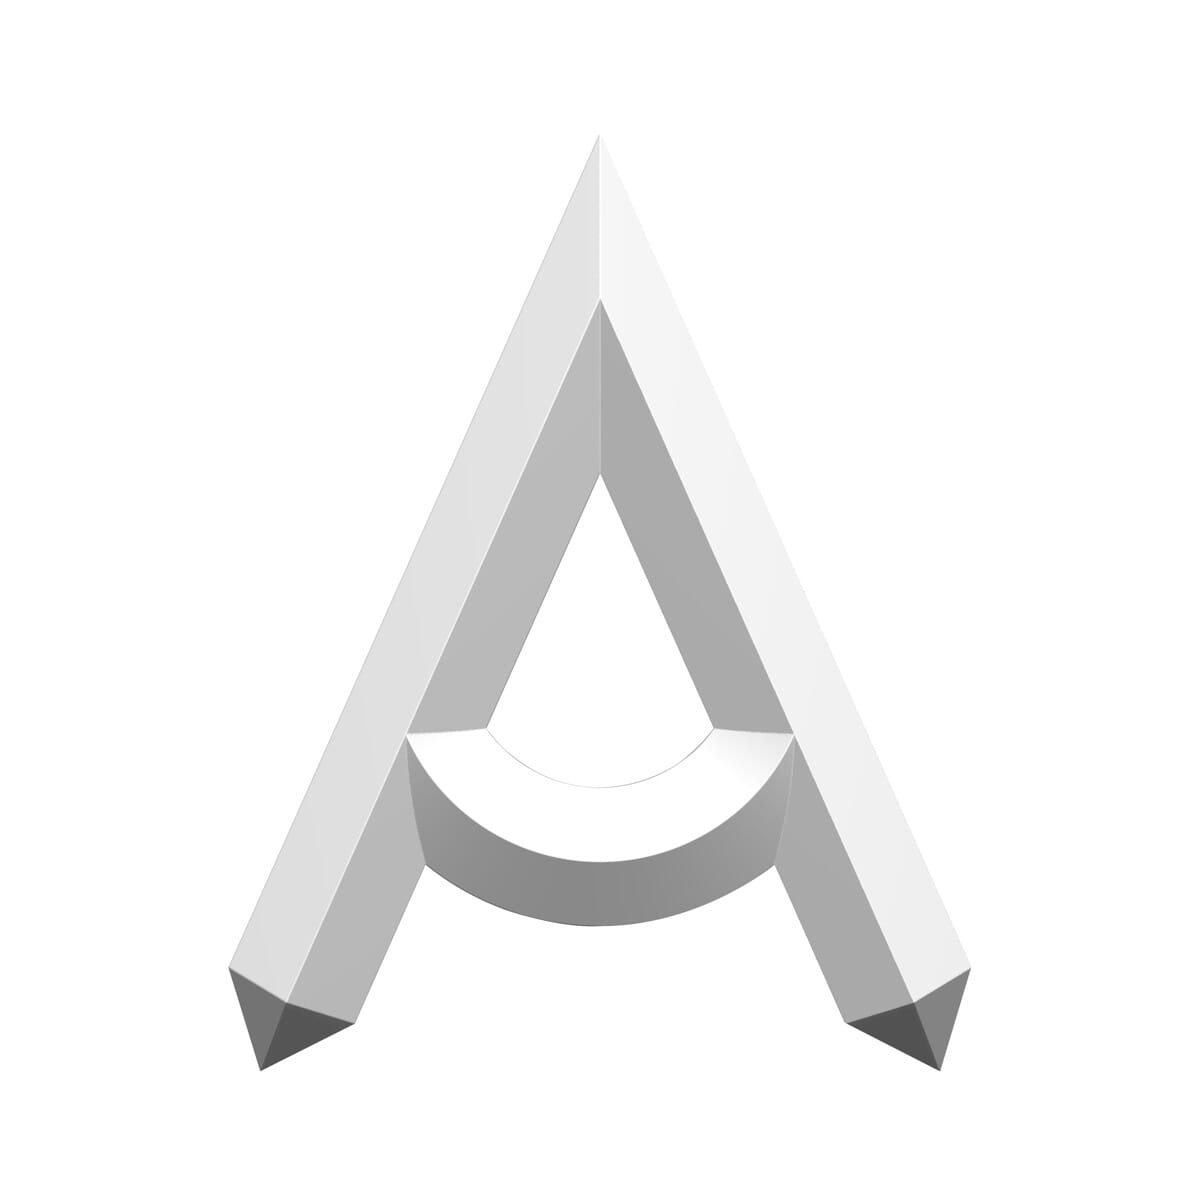 M5 x 30mm Carriage Bolts (DIN 603) - Phosphor Bronze